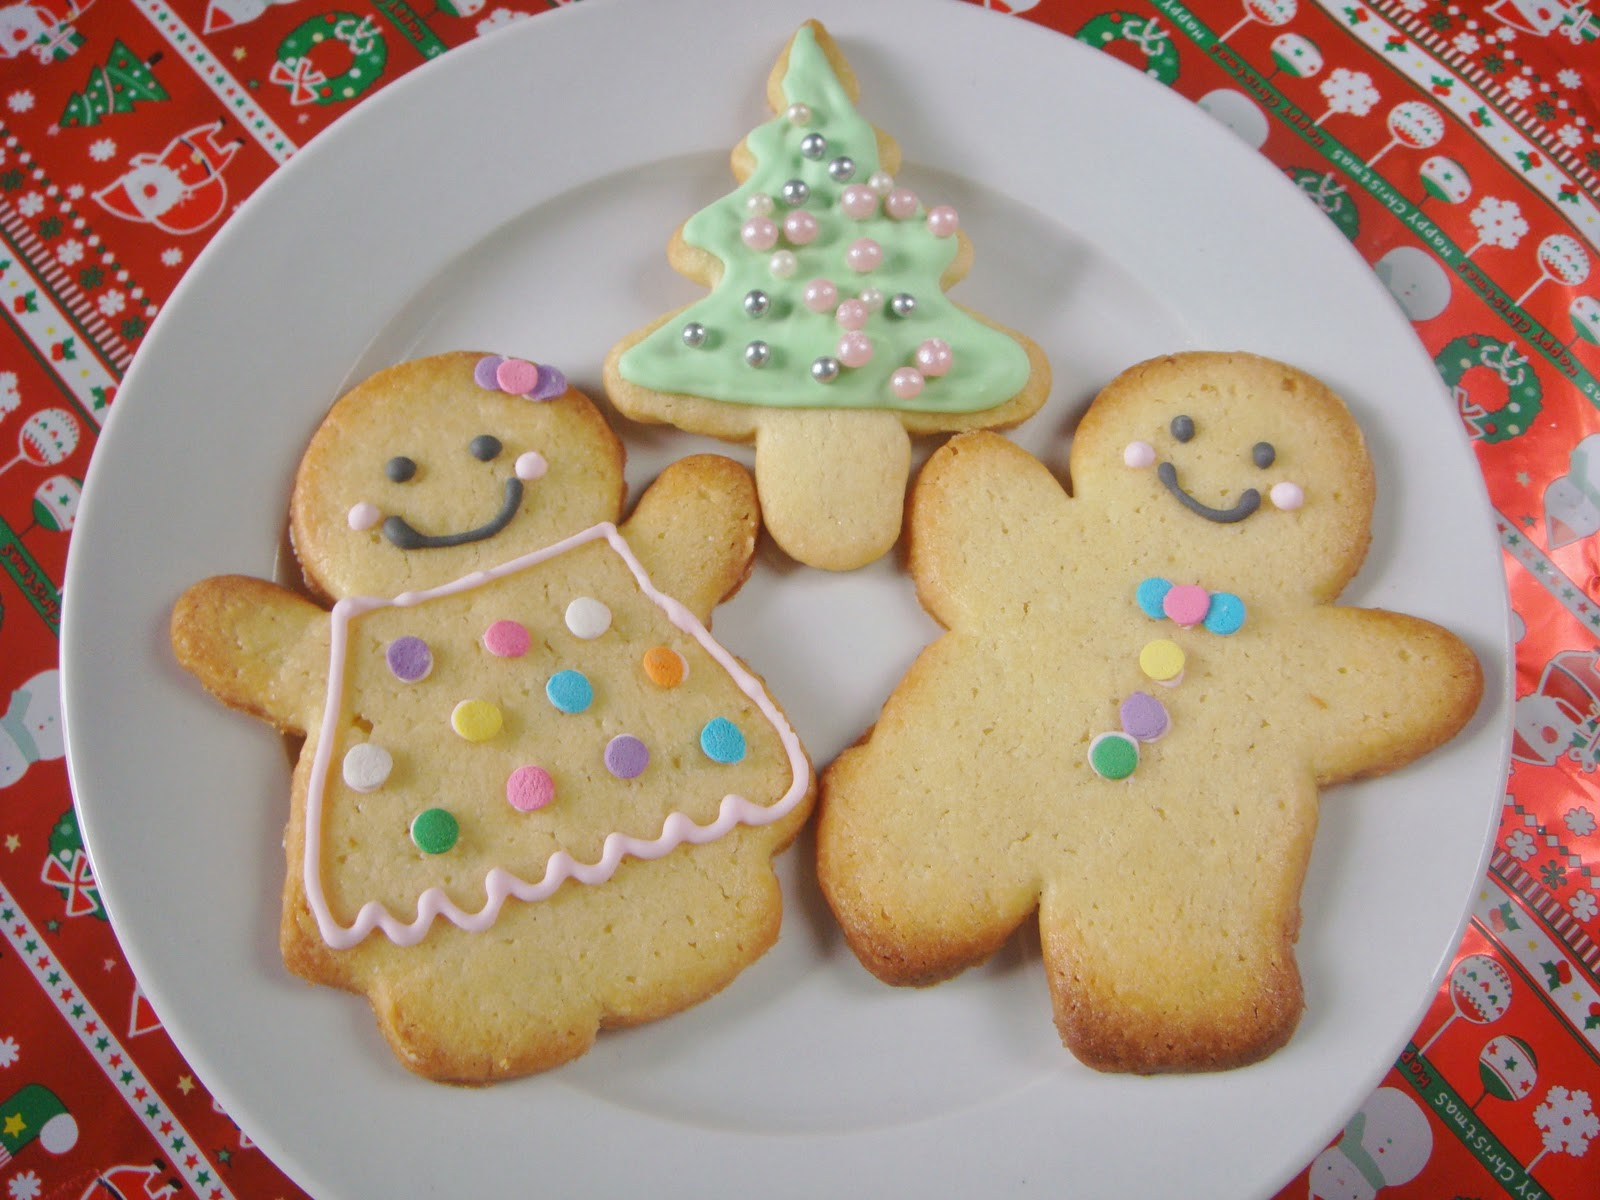 Christmas Cookies Cool Wallpapers Wallpaper High Definition High